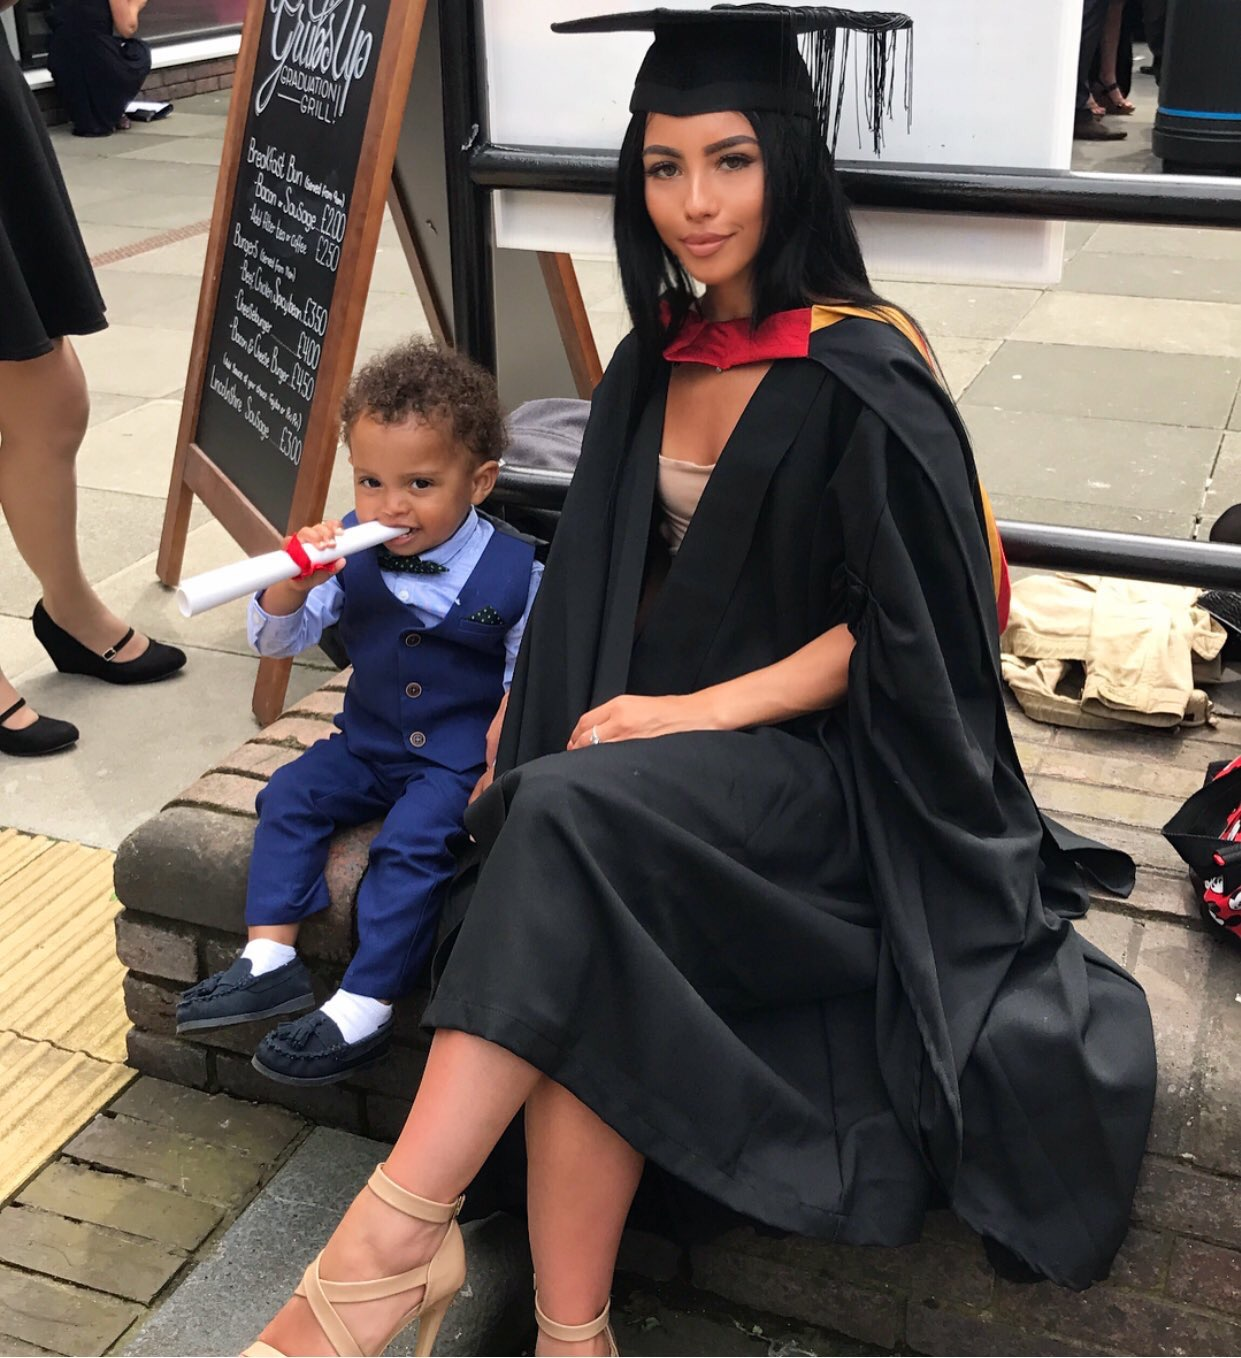 #Beautyandbrains : 22 Year Old Mum Becomes Internet Sensation After Graduating With 2.1 CGPA In Law